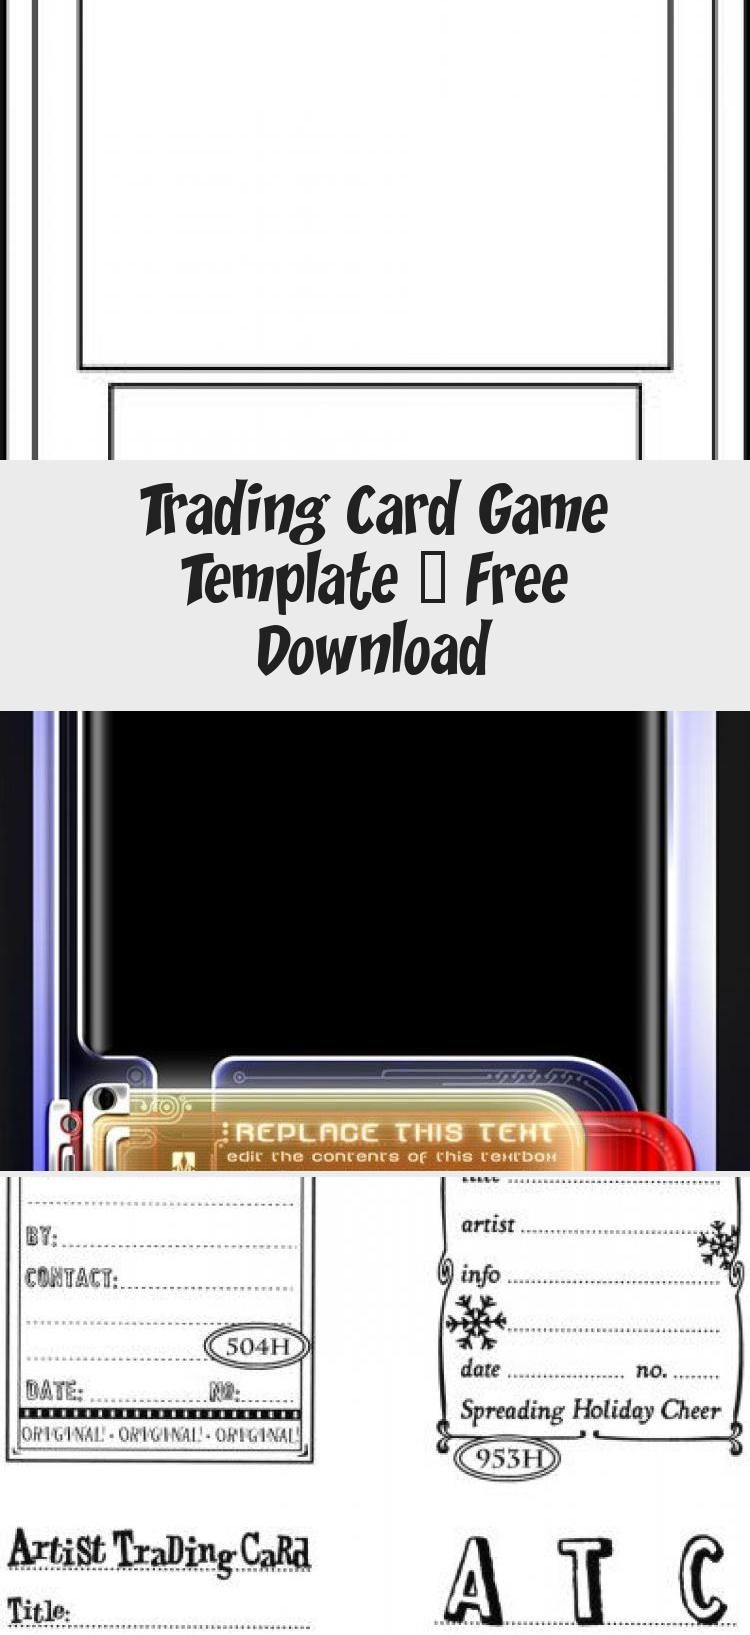 Trading Card Game Template Free Download Birthdaycardsonline Baseball Card Template Card Games Trading Card Template